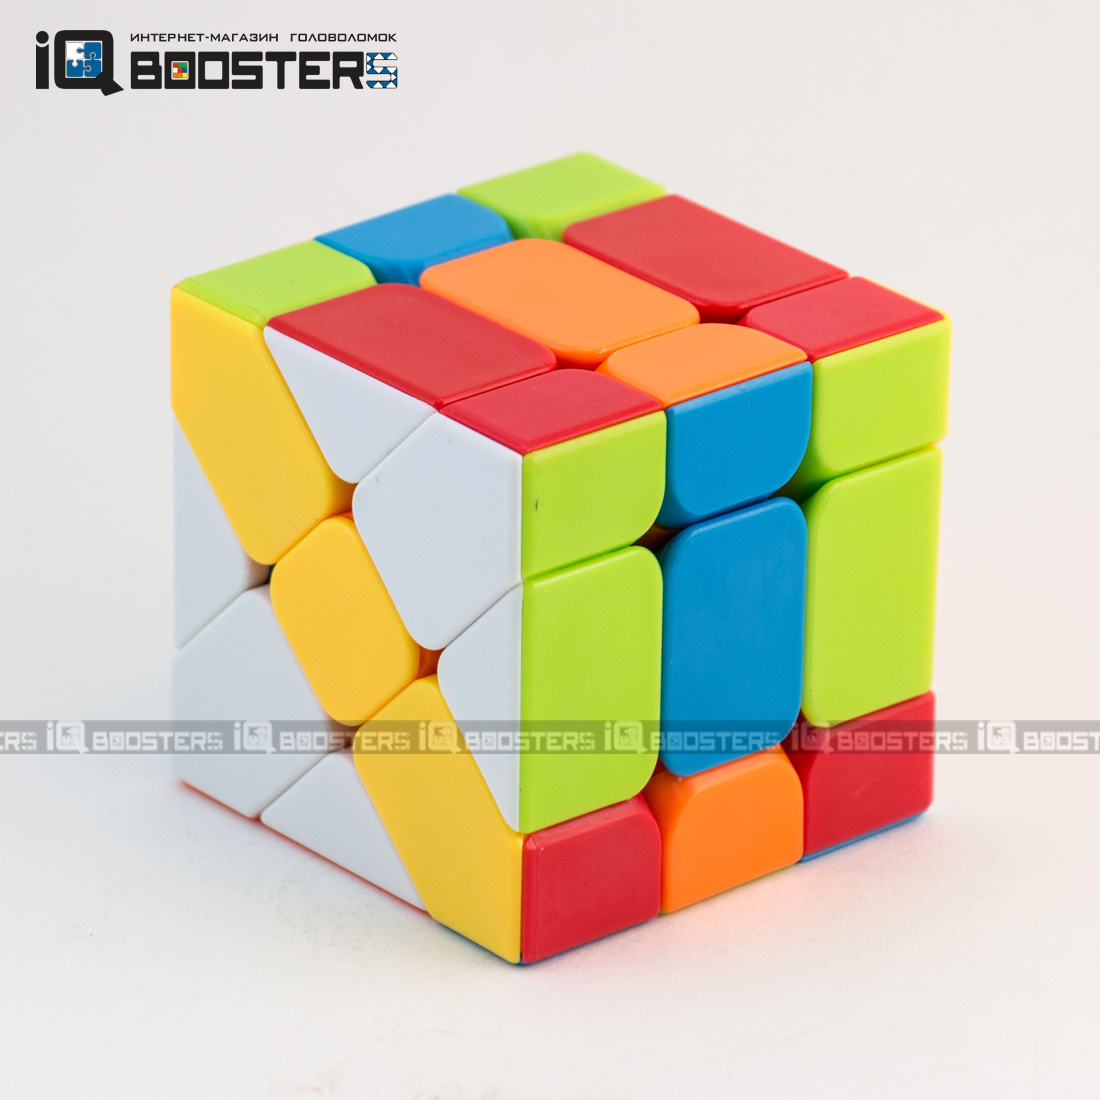 fanxin_fisher_cube_3